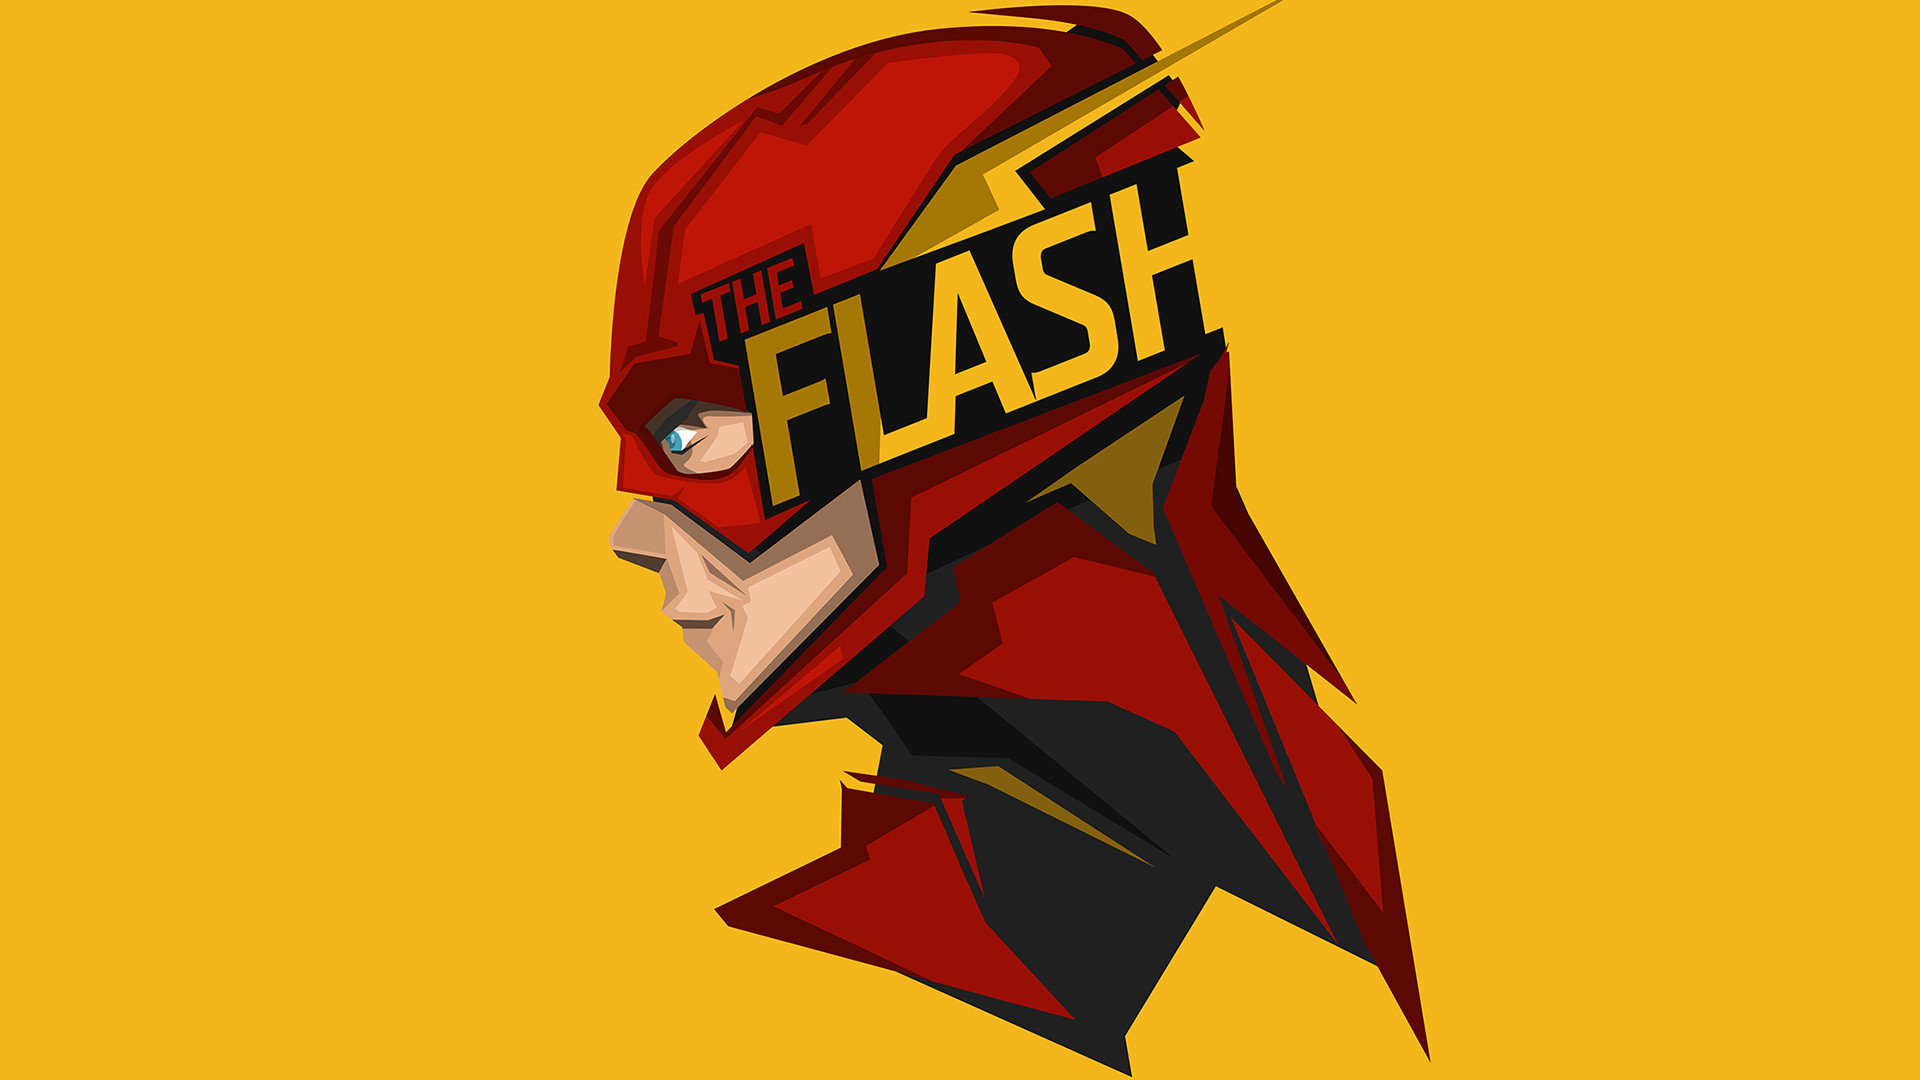 Download The Once and Future <b>Flash</b> 2017 HD <